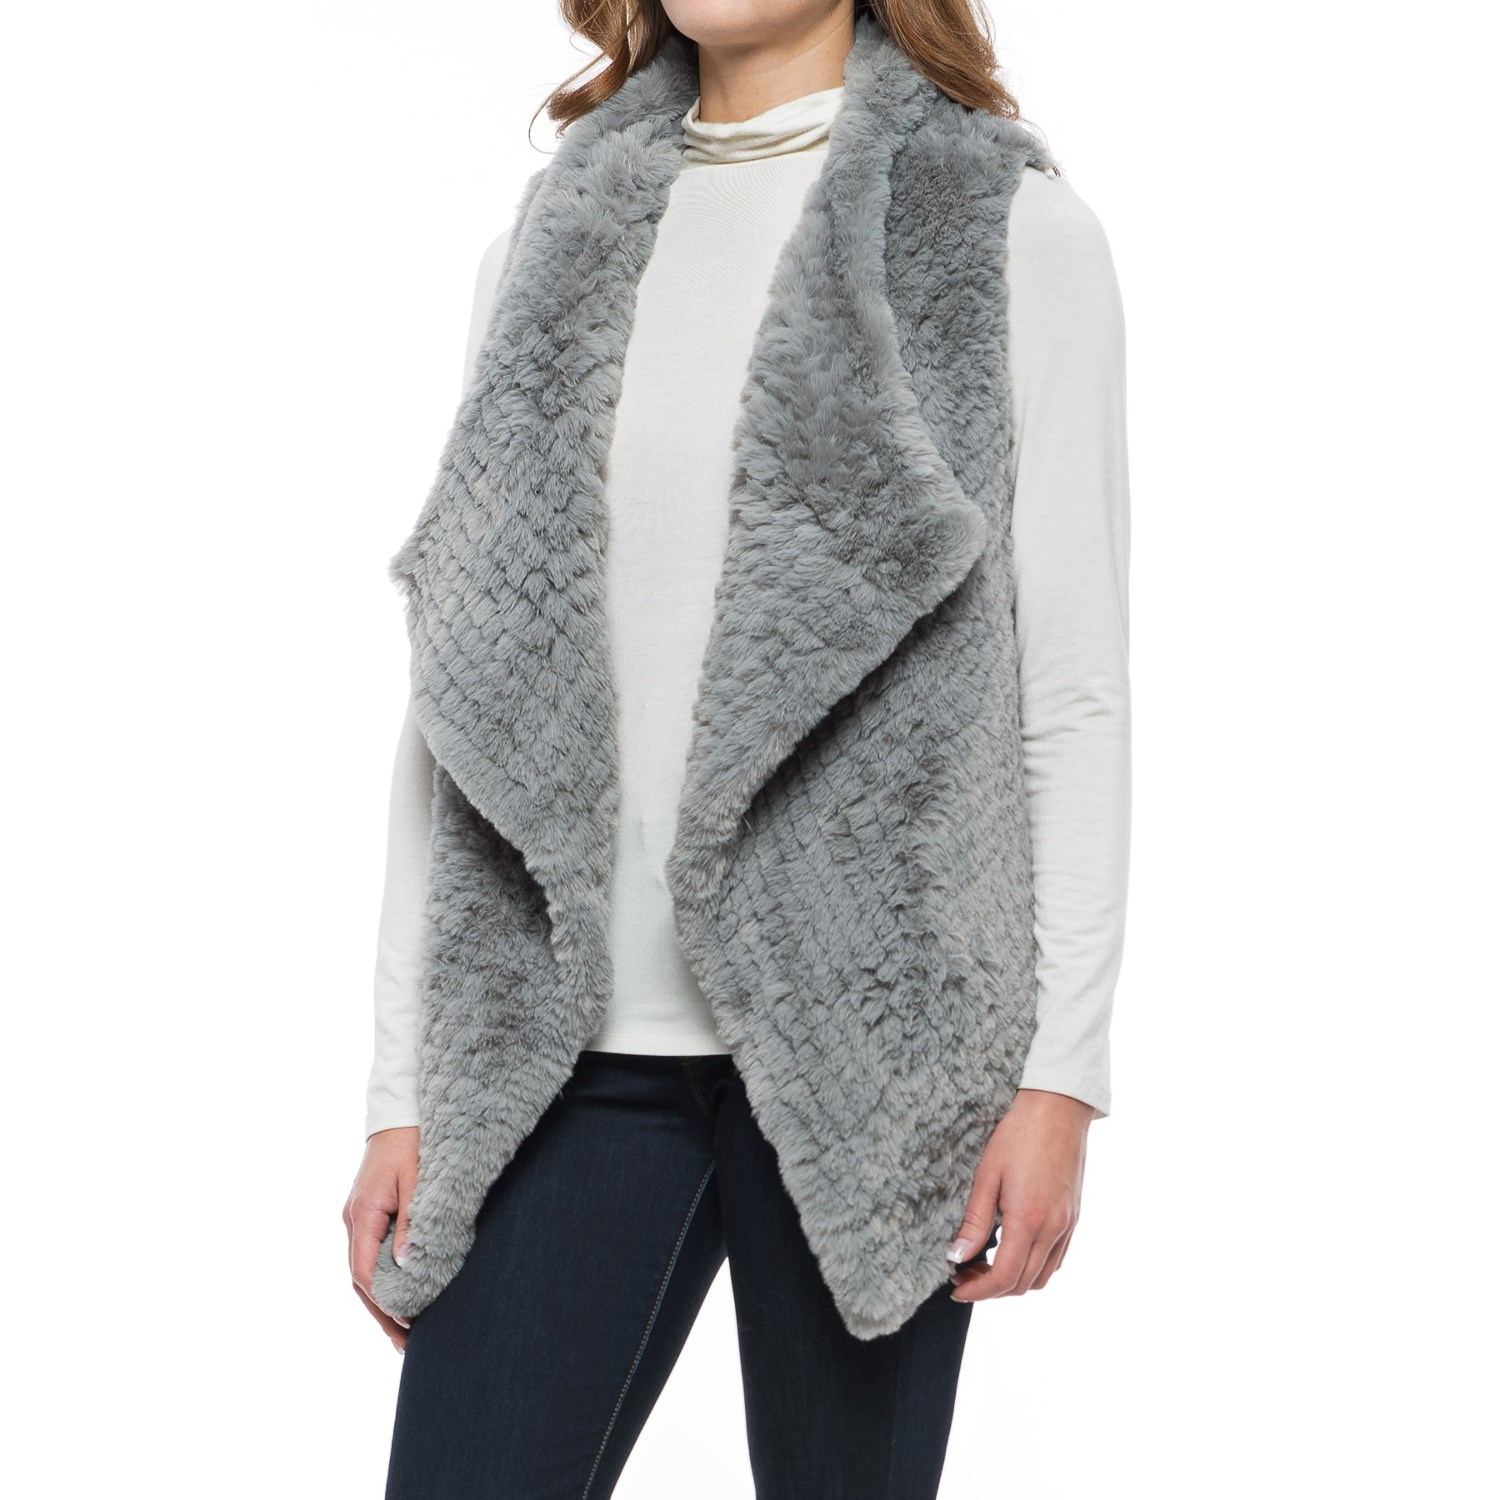 Womens Vests Cotton average savings of 55% at Sierra Trading Post